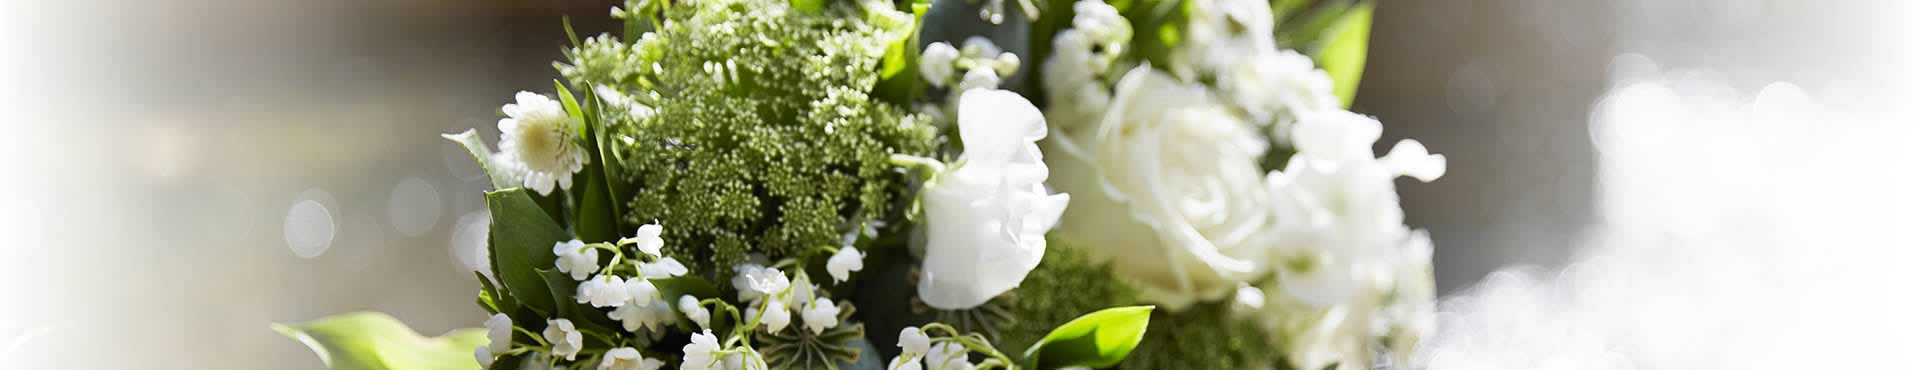 Funeral Flowers Card Messages: What to Write